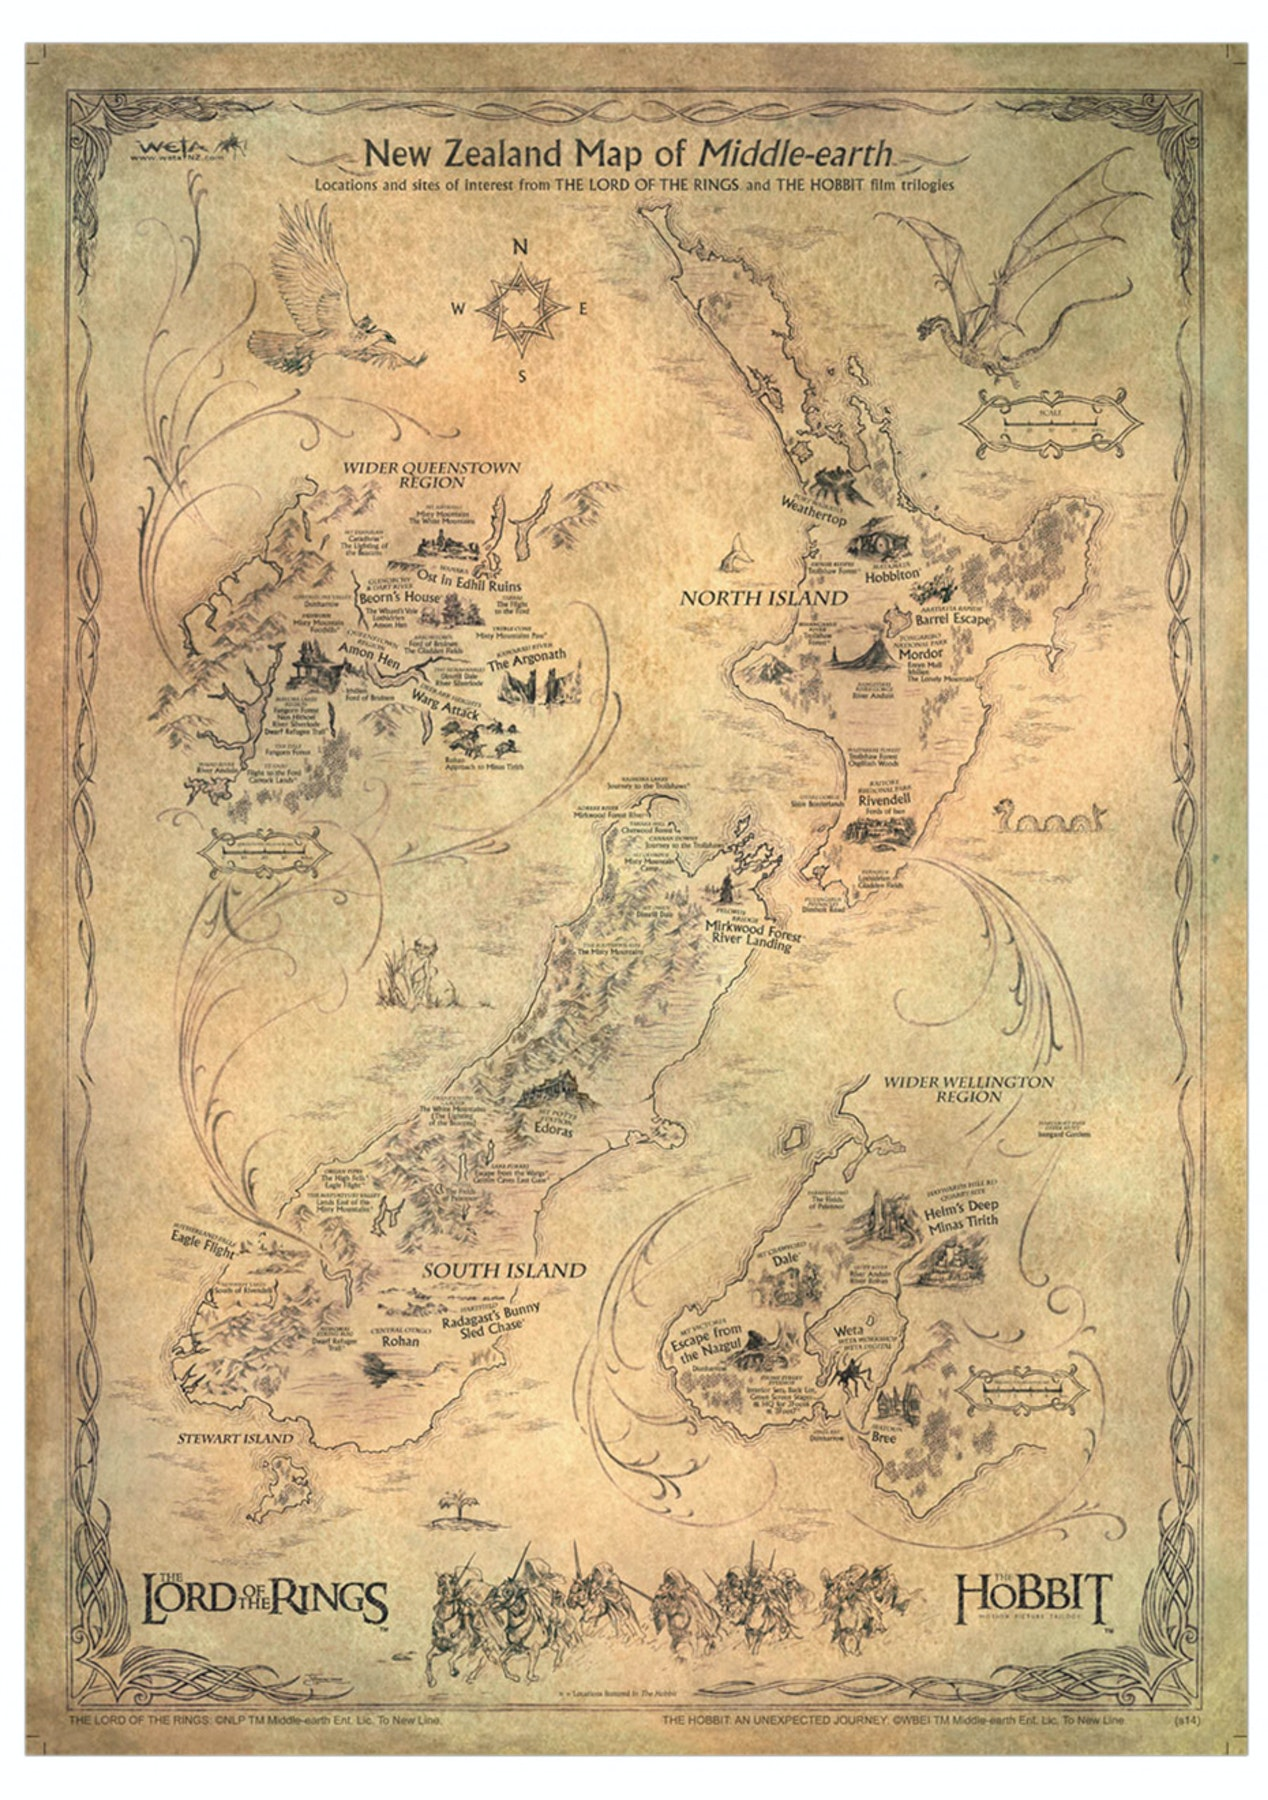 The Hobbit Art Print Nz Map Of Middle Earth Lotr Hobbit Locations